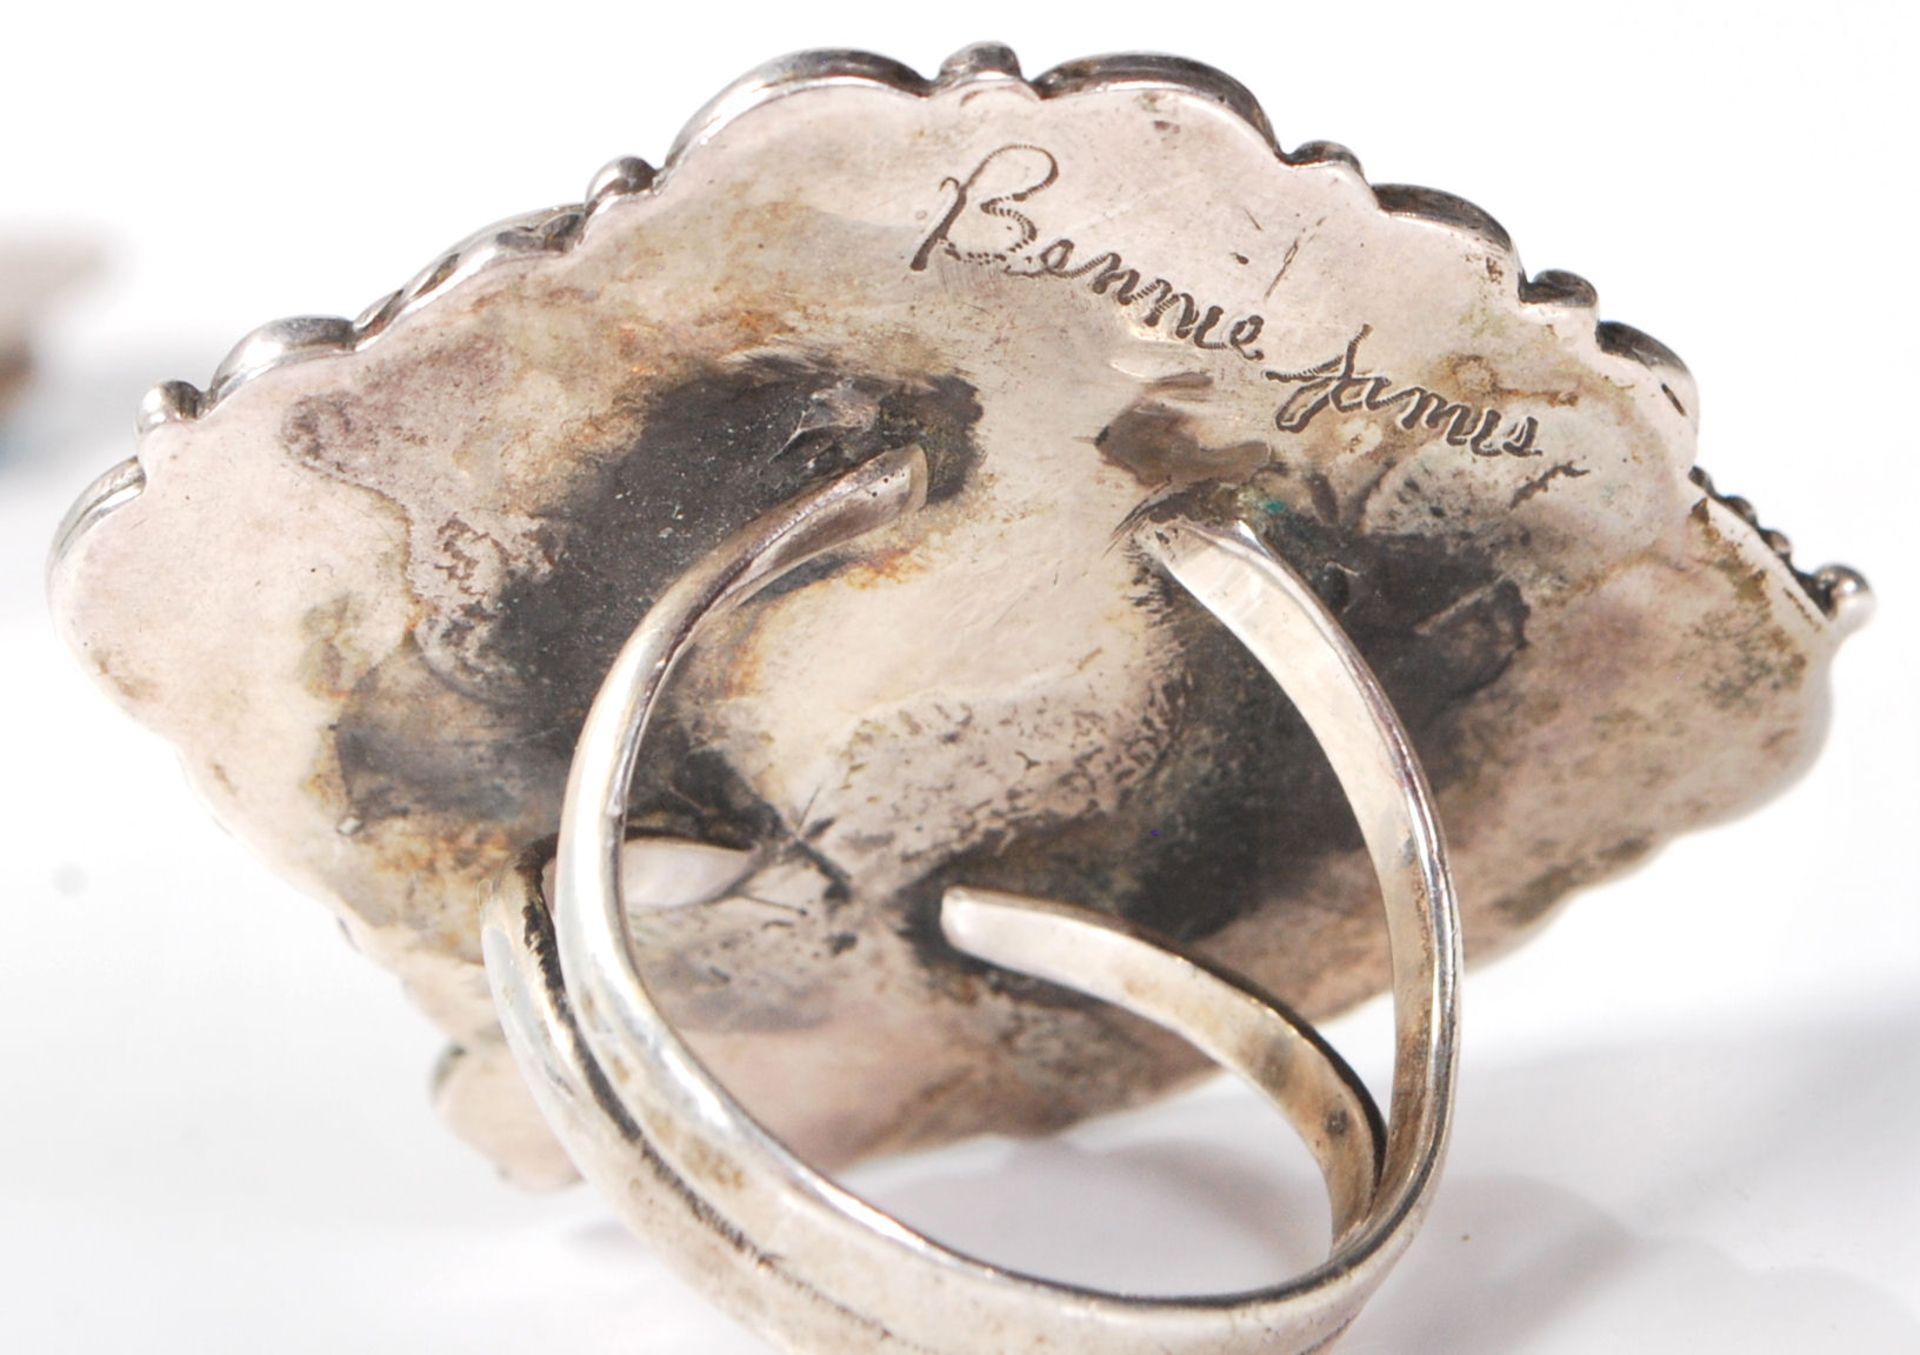 Los 760 - Two silver Navajo / Zuni Native American signed rings to include one signed by N Lee having a